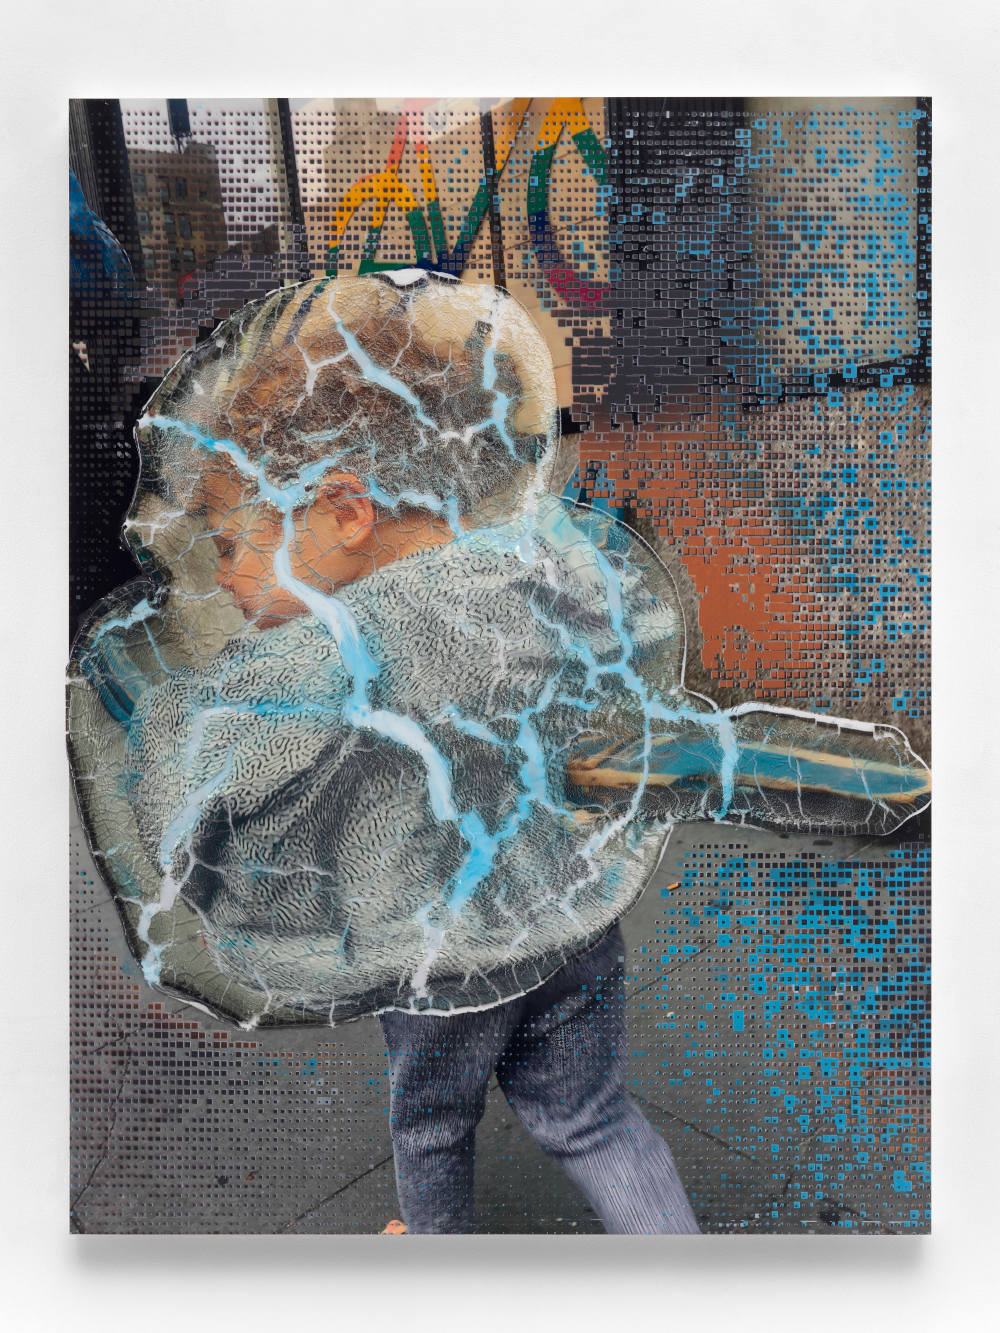 Seth Price, Social Space: Rainbow Signal, Cracked Police Barrier, Boy with Virus Pattern, 2019. Acrylic polymer, acrylic paint, inkjet on plastic, UV-cured inkjet, wood, metal, 140 x 107 cm. Courtesy of the artist and Galerie Chantal Crousel, Paris. Photo : Martin Argyroglo